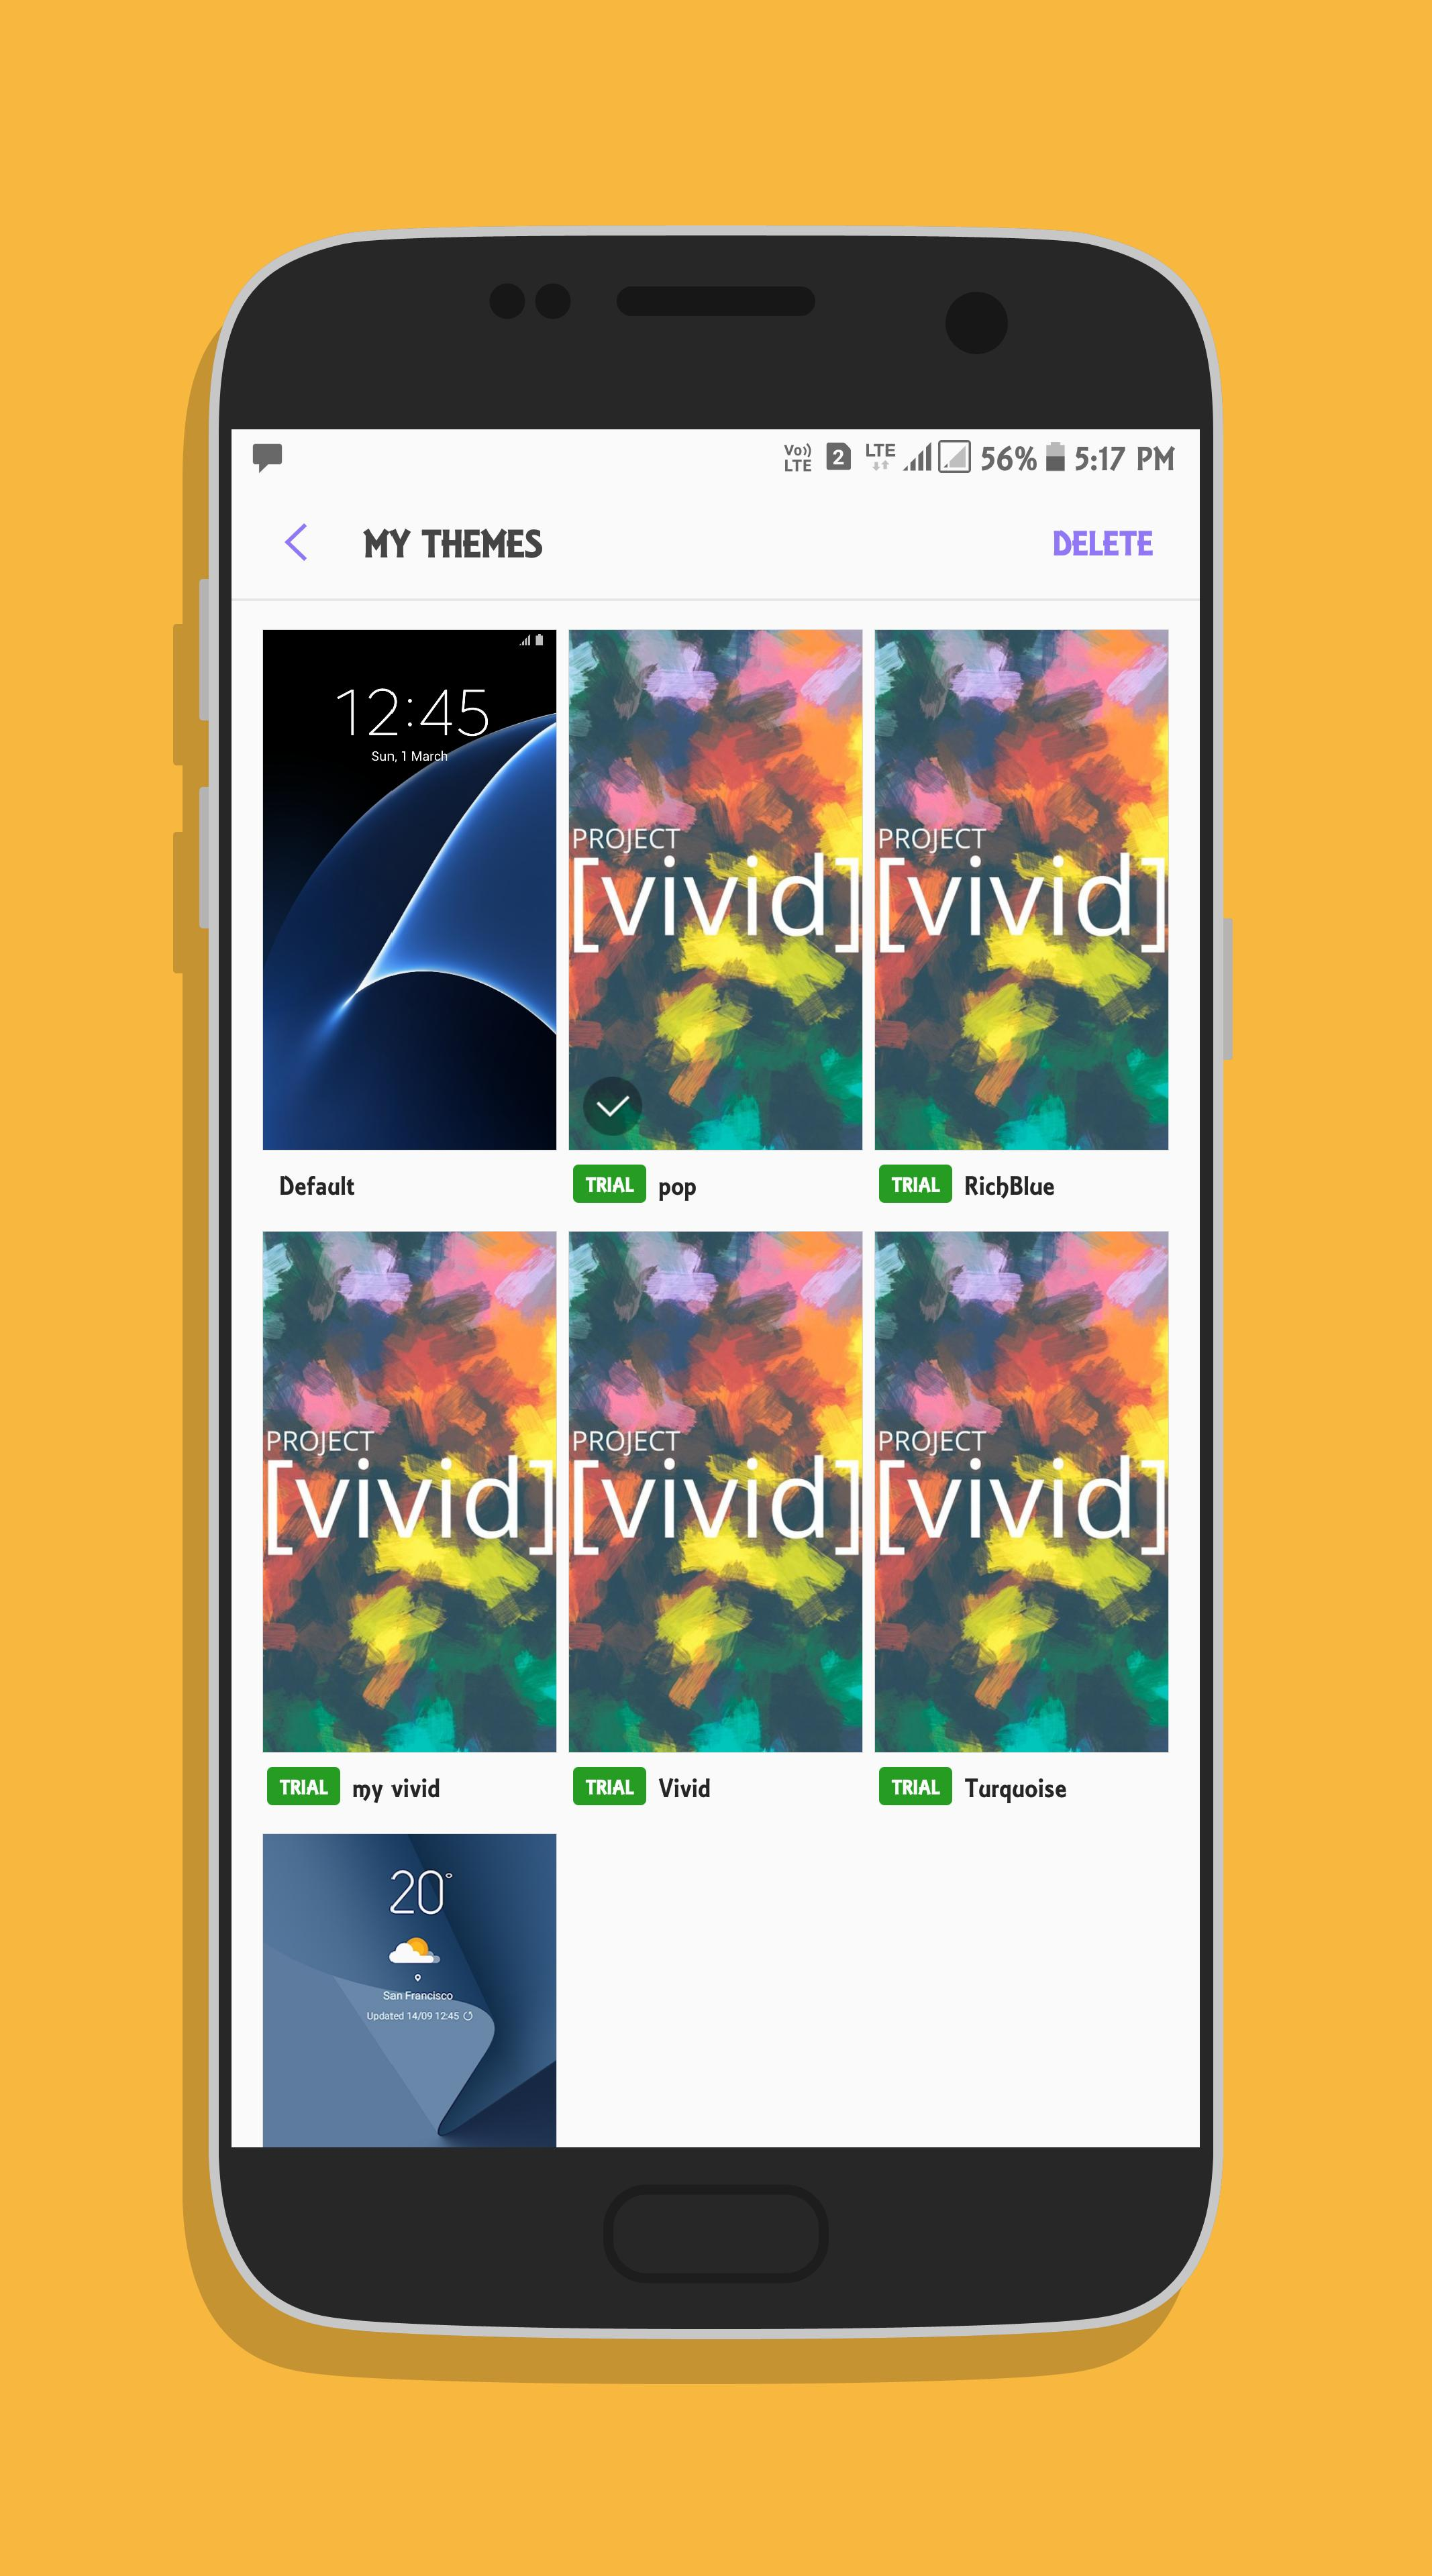 themeGalaxy DIY for Samsung Galaxy Note/S/J/C/A ✺ for Android - APK